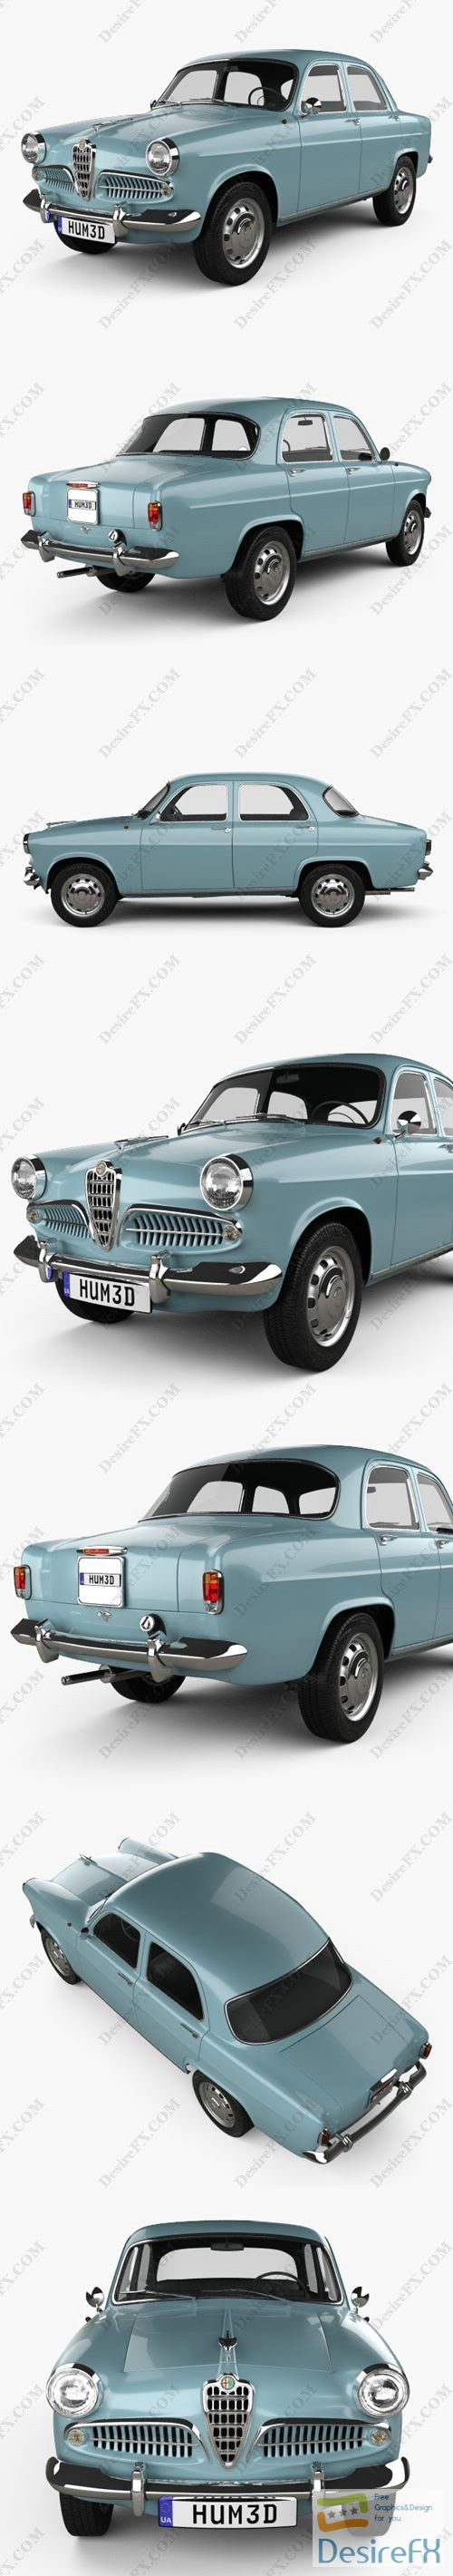 Alfa Romeo Giulietta Berlina 1955 3D Model